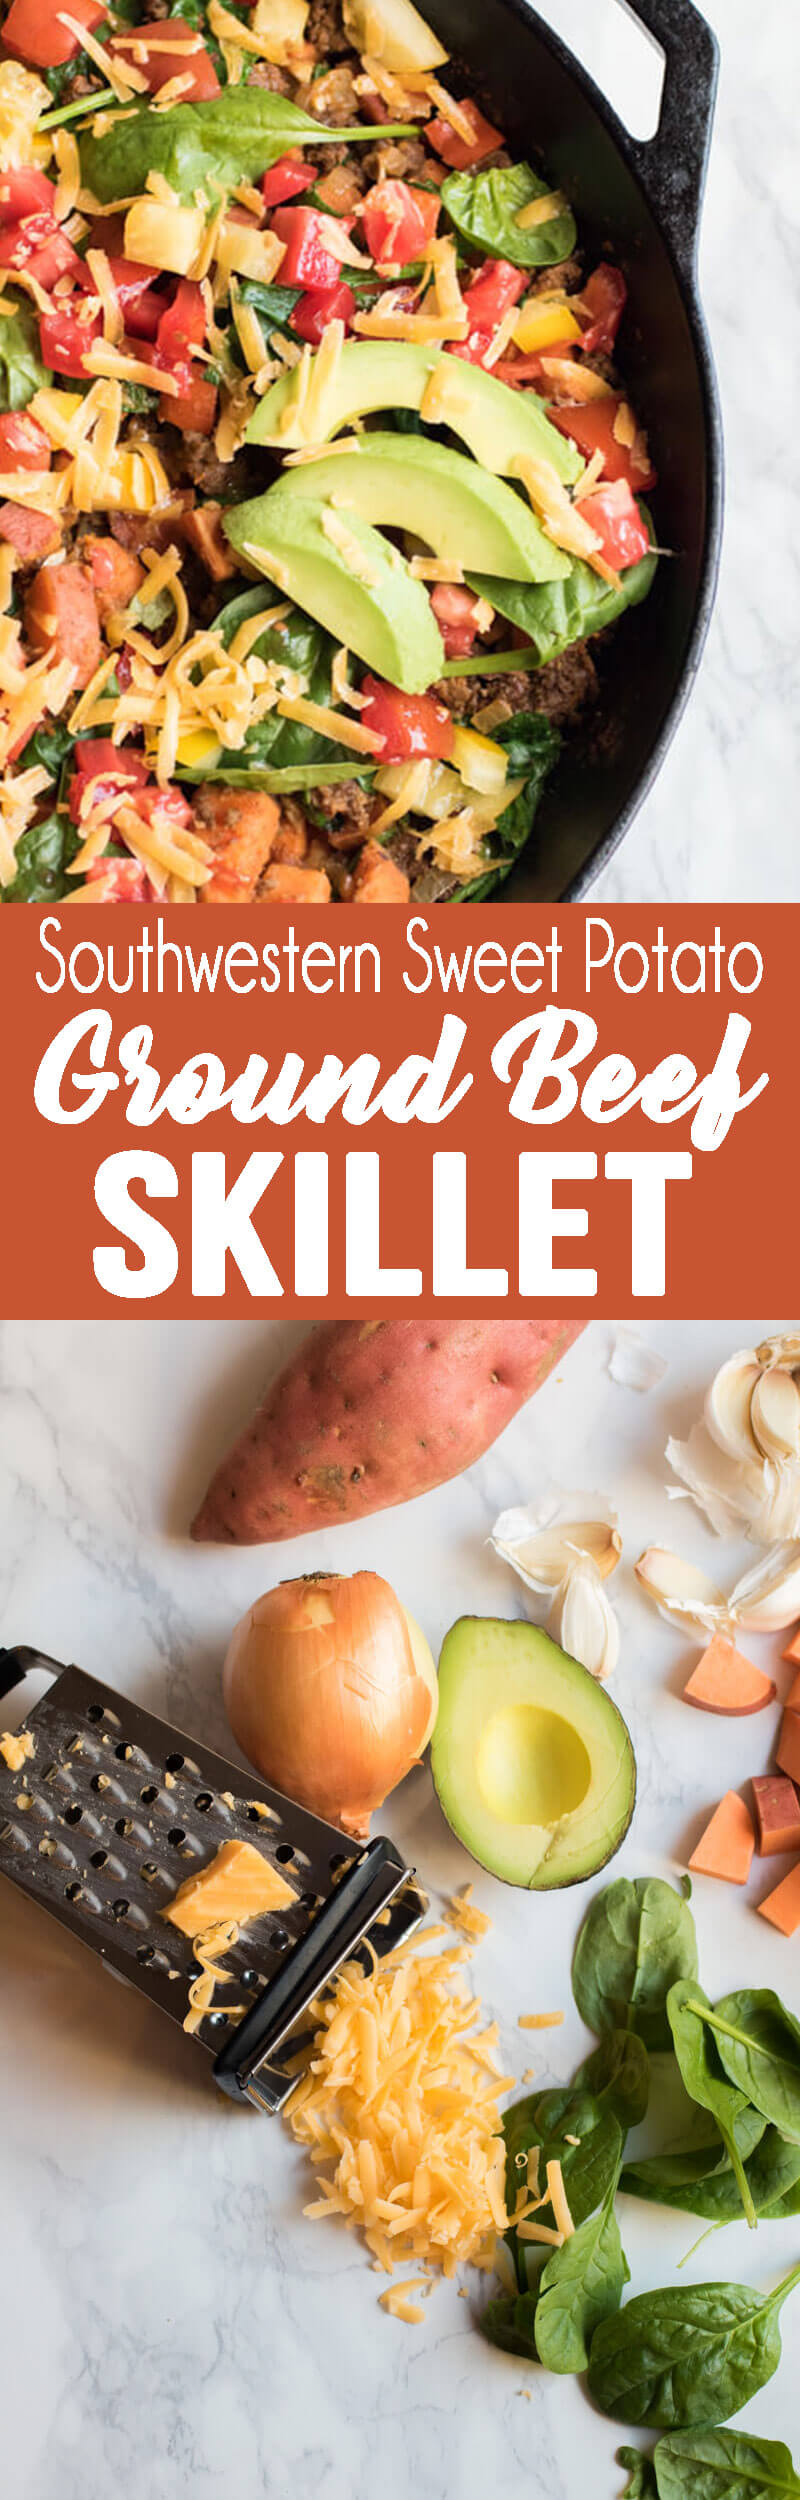 Southwestern sweet potato ground beef skillet